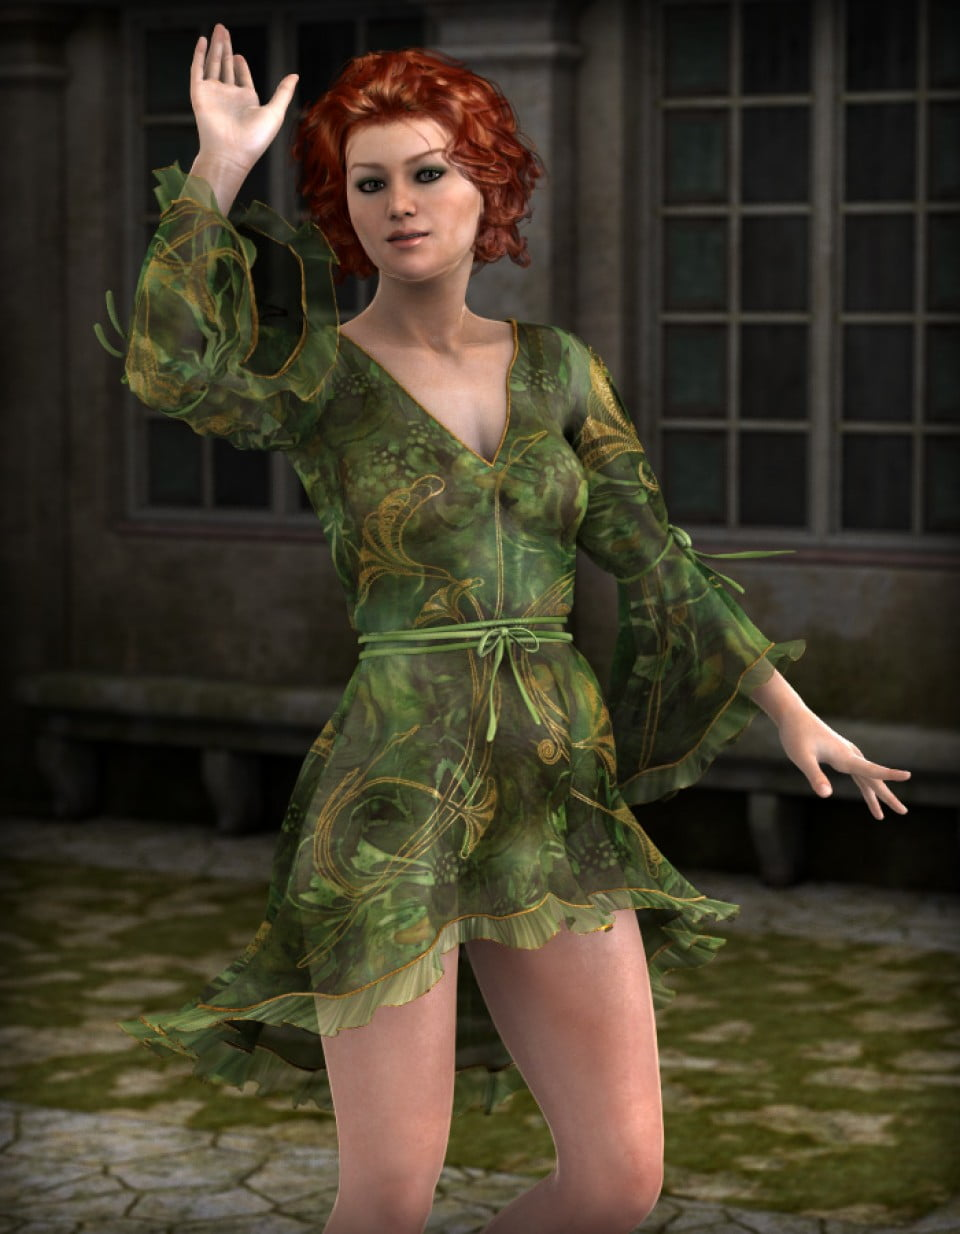 Florinda Fashion in People and Wearables, Clothing and Accessories, Everyday,  3D Models by Daz 3D